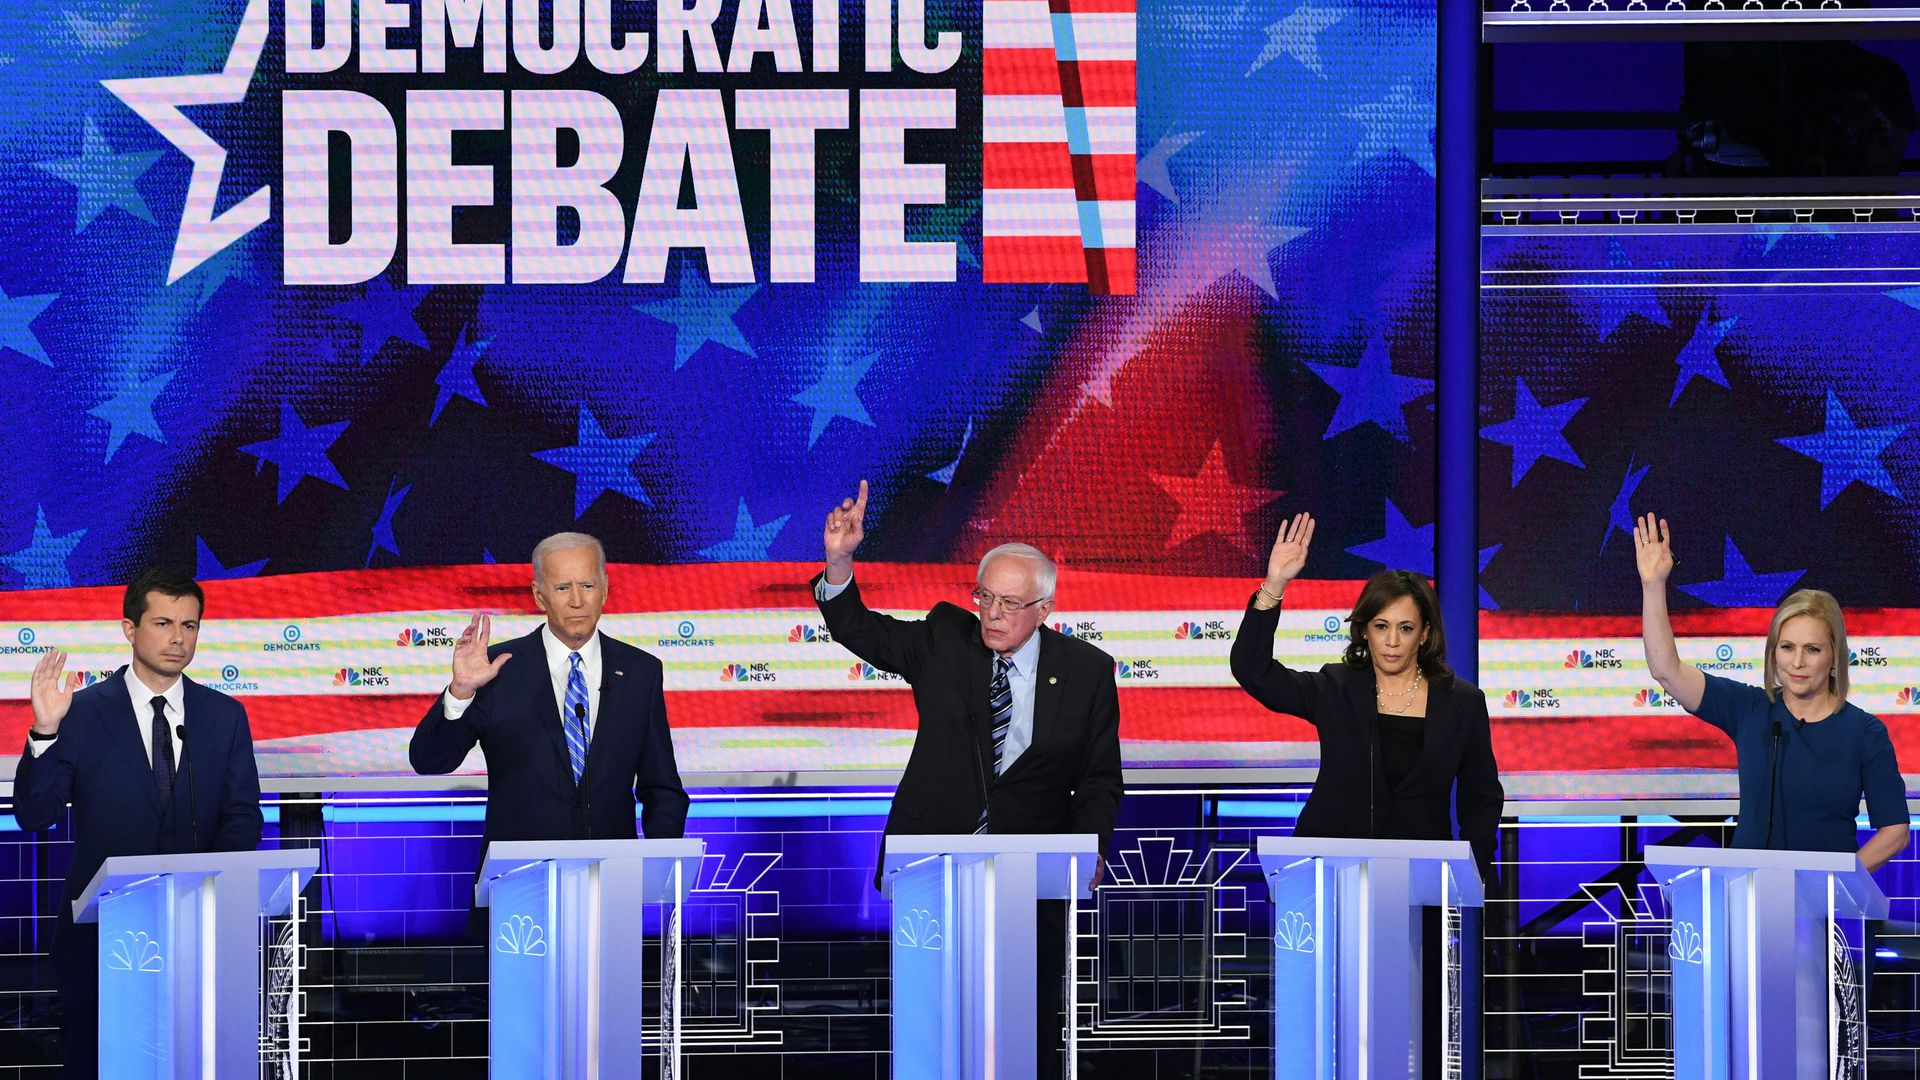 Democratic presidential candidates on the debate stage raise their hands